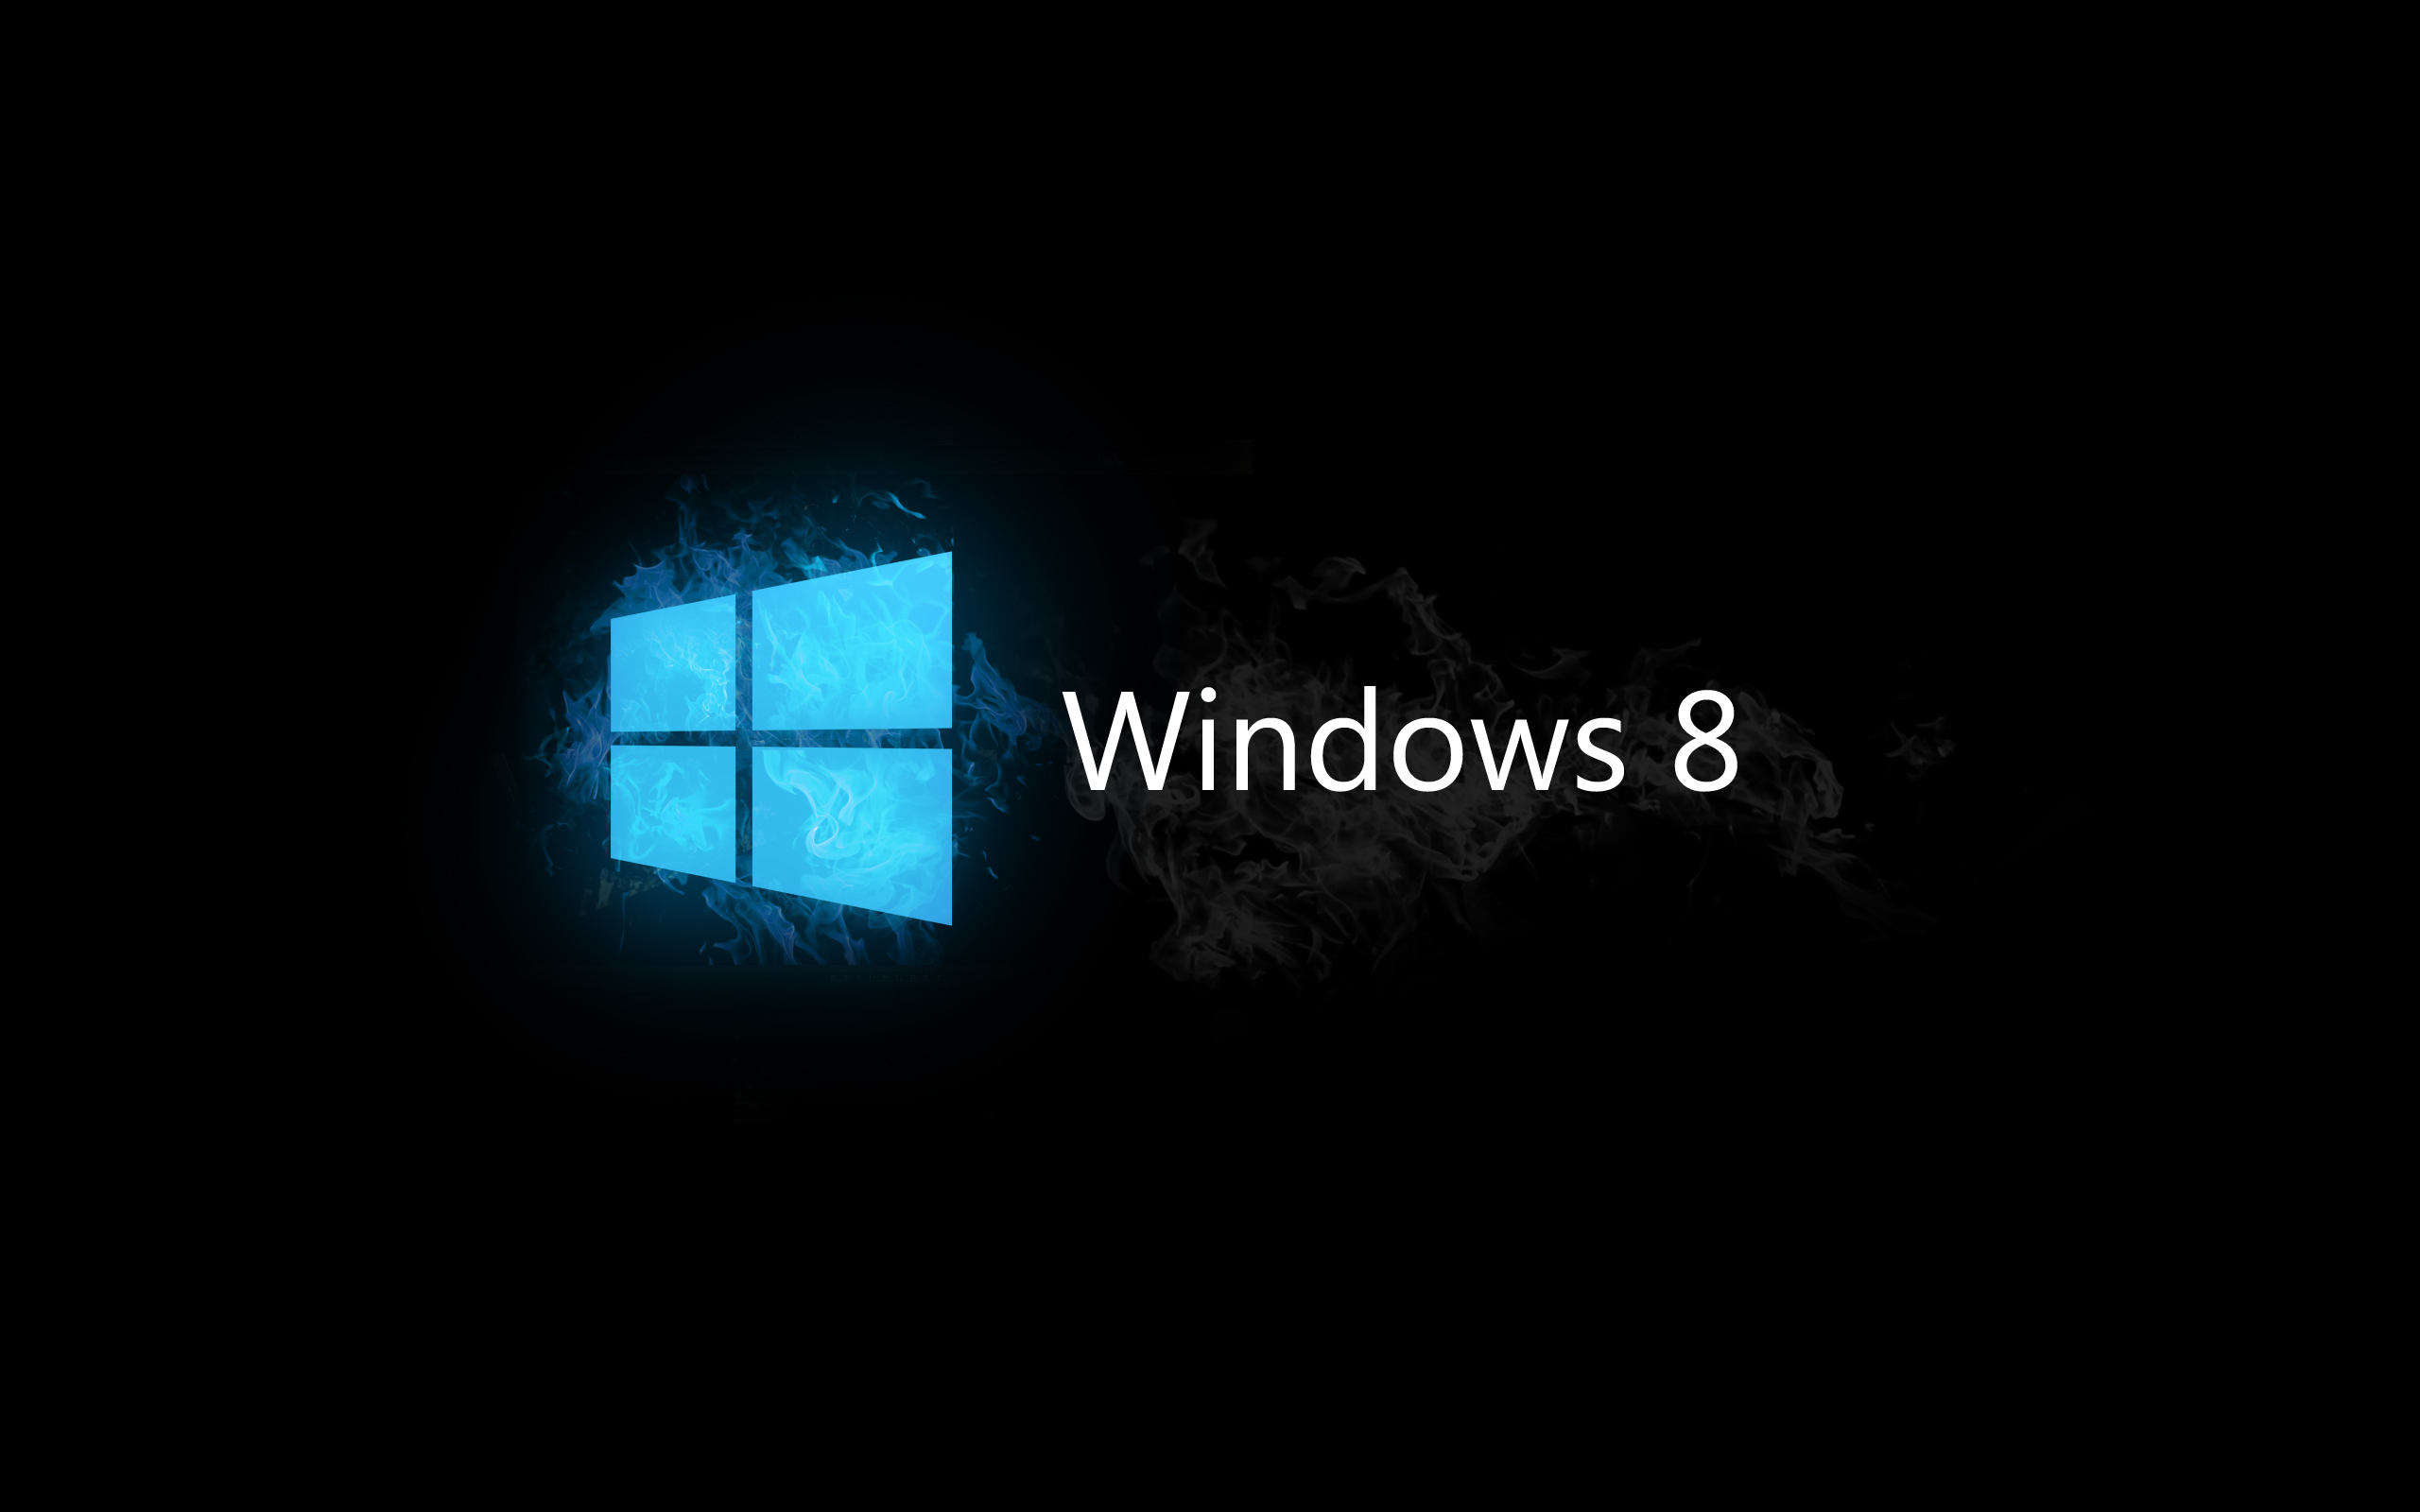 Windows 8 HD Wallpaper Dark